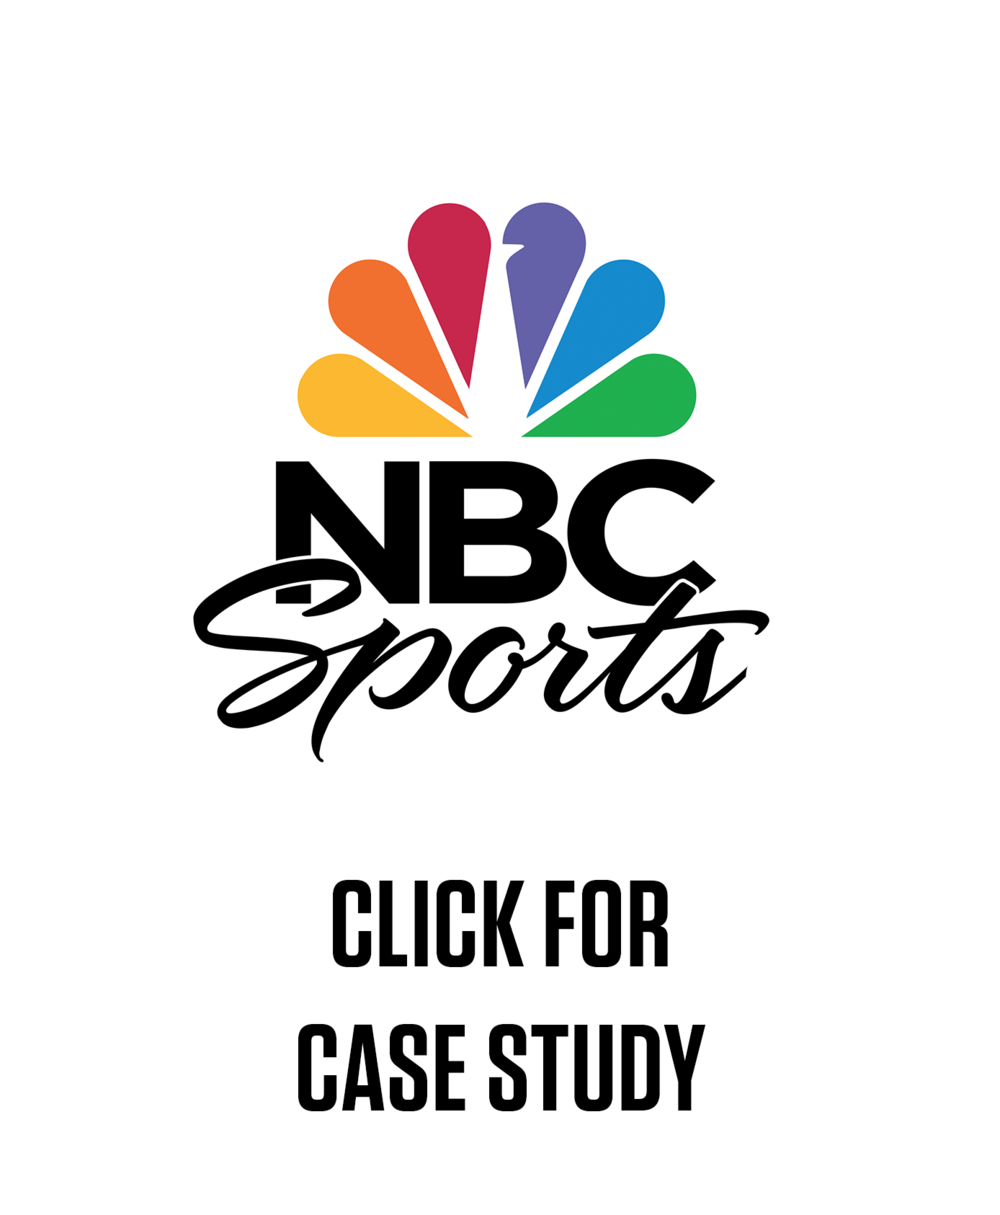 casestudynbc.png